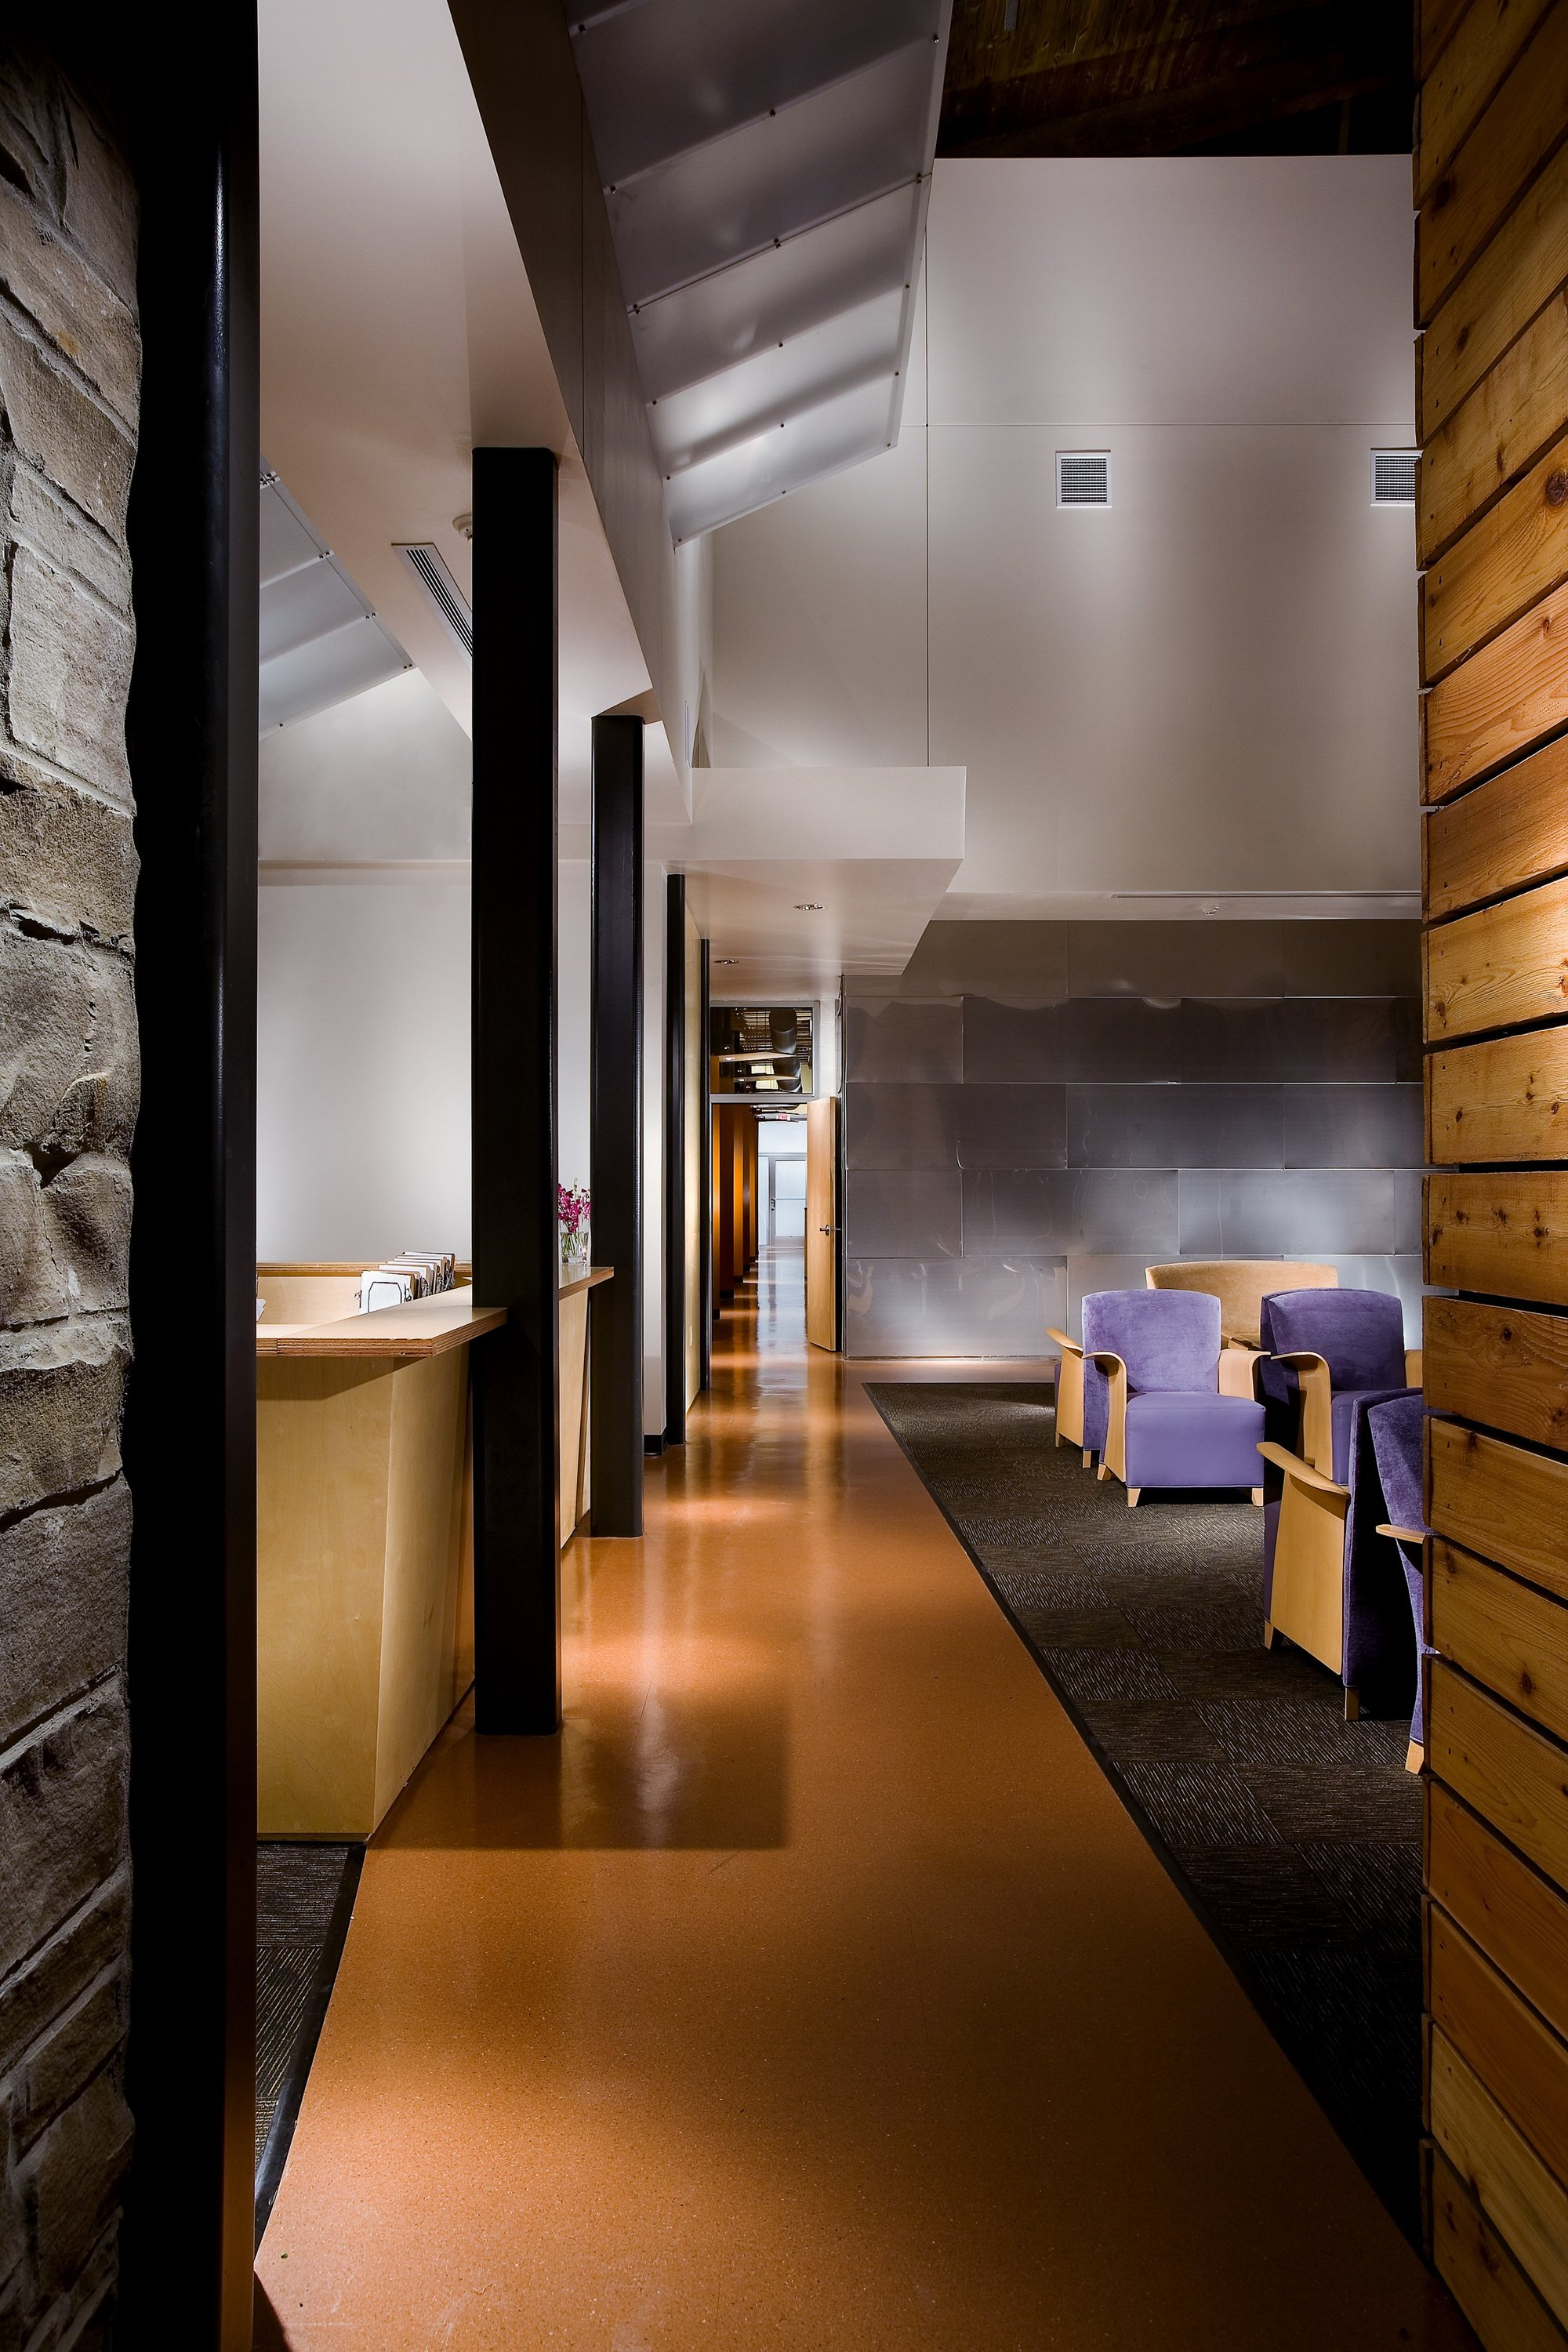 Commercial Van Interiors >> Woodbury Dermatology Clinic / archimania | ArchDaily